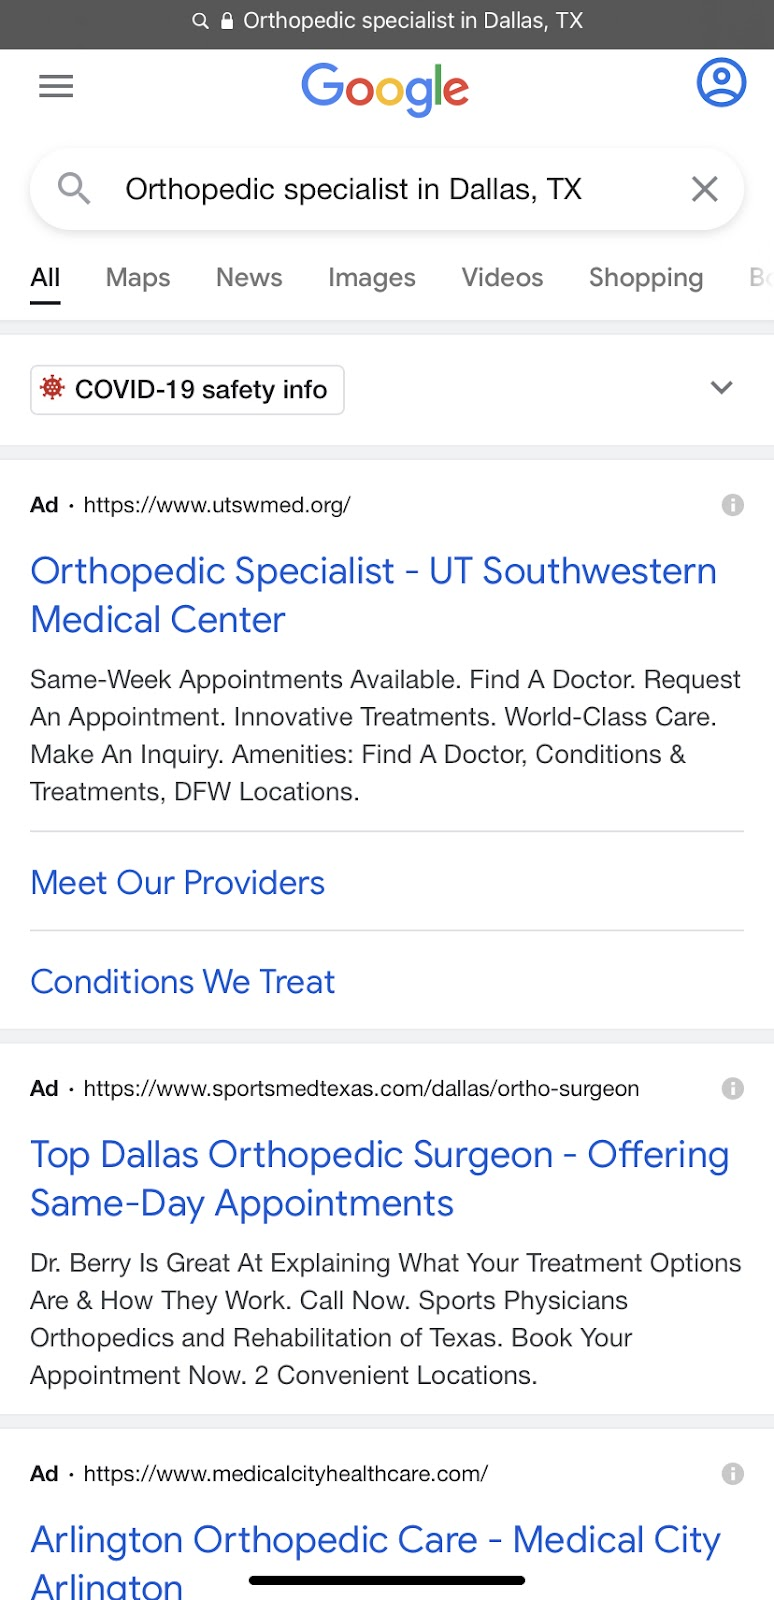 Screenshot image of Google search for Orthopedic specialist in Dallas, Tx to explain PPC advertising and targeted ads across a specific location